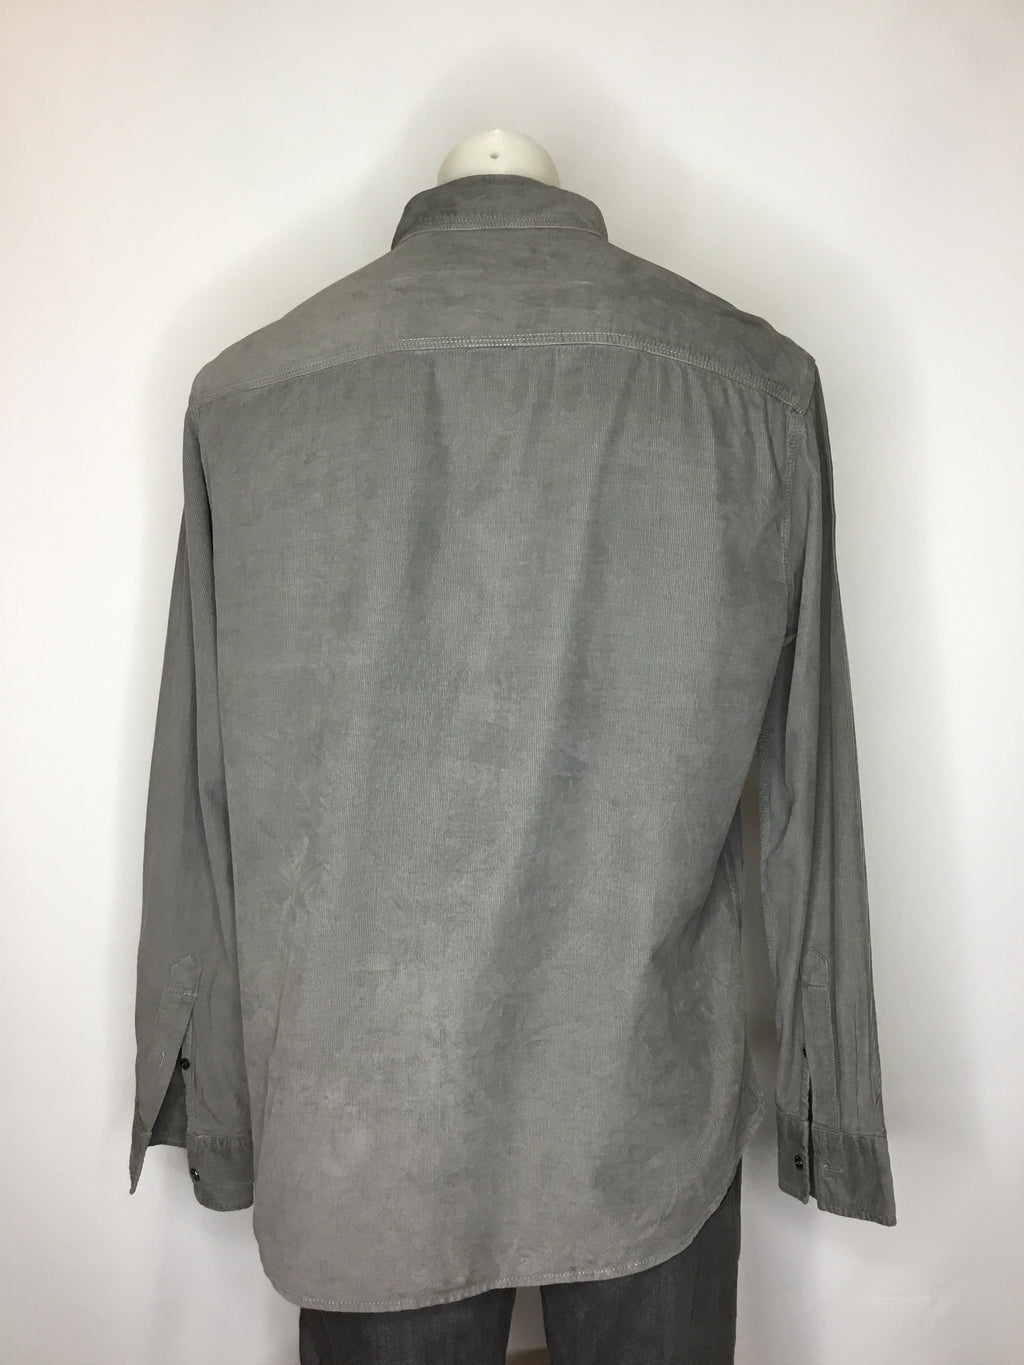 Fossil Grey Cord Shirt